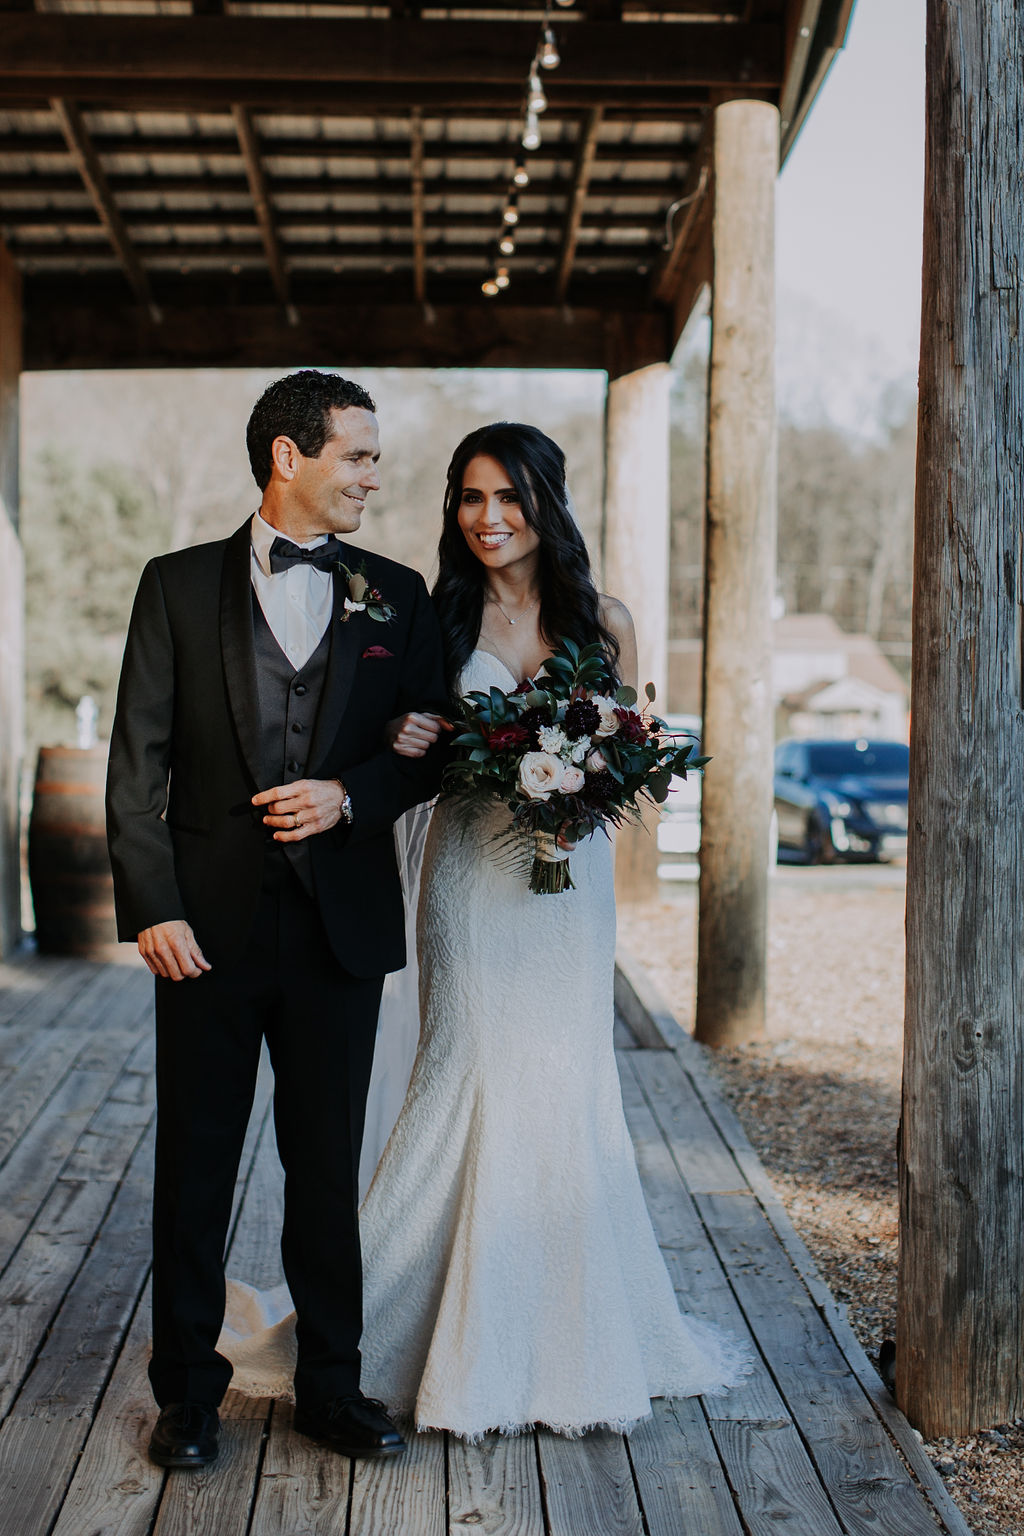 CaseyandChadWeddingORIGINALS_20190126_DNP_2472.jpg